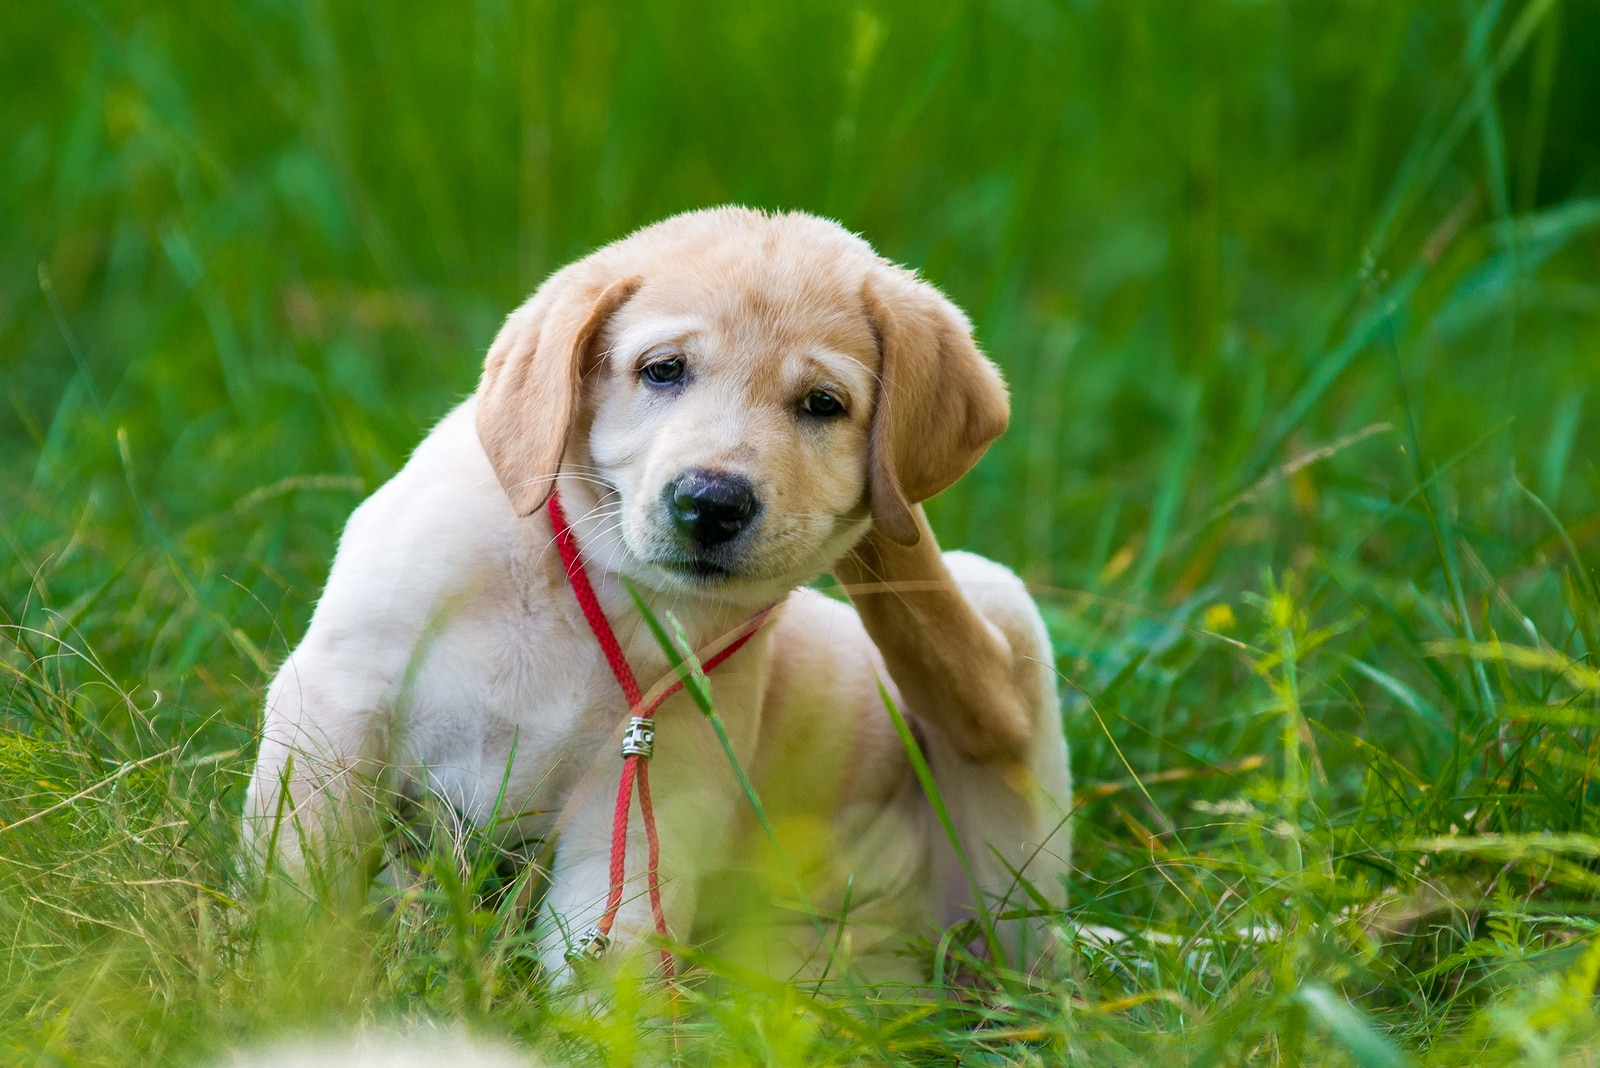 Puppy retriever scratching fleas in the grass